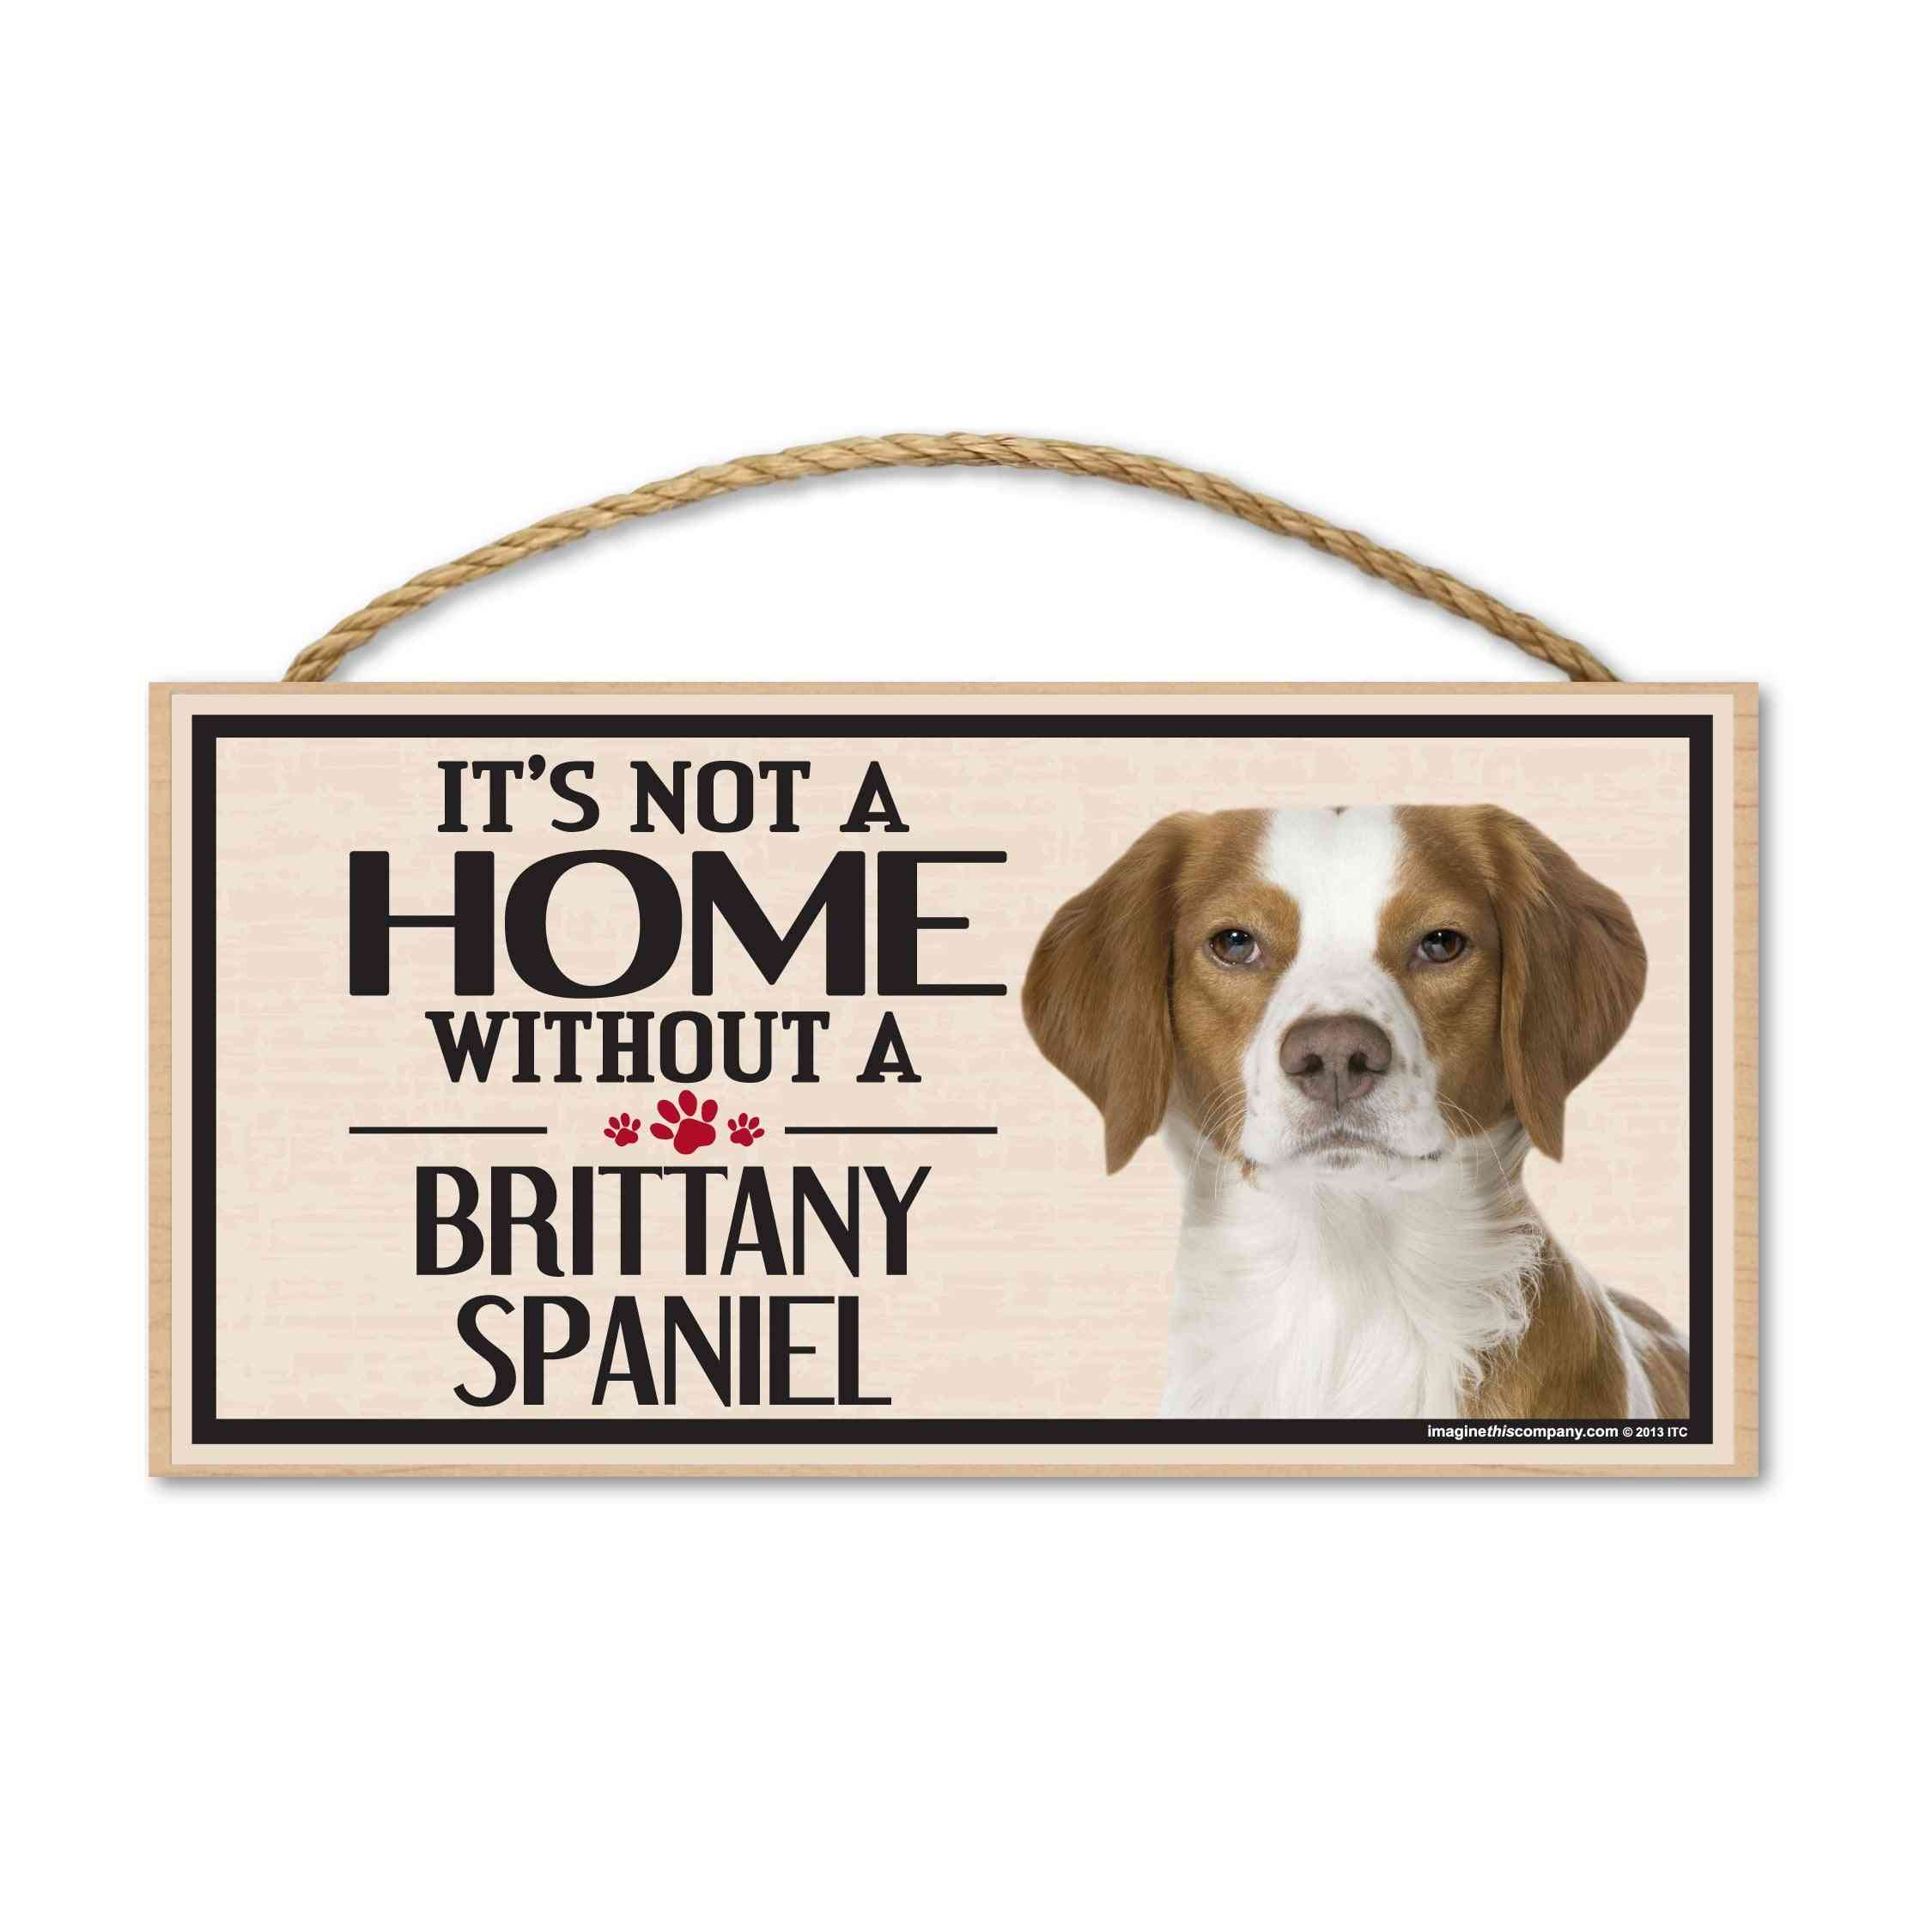 Sign, Wood, It's Not A Home Without A Brittany Spaniel, 10